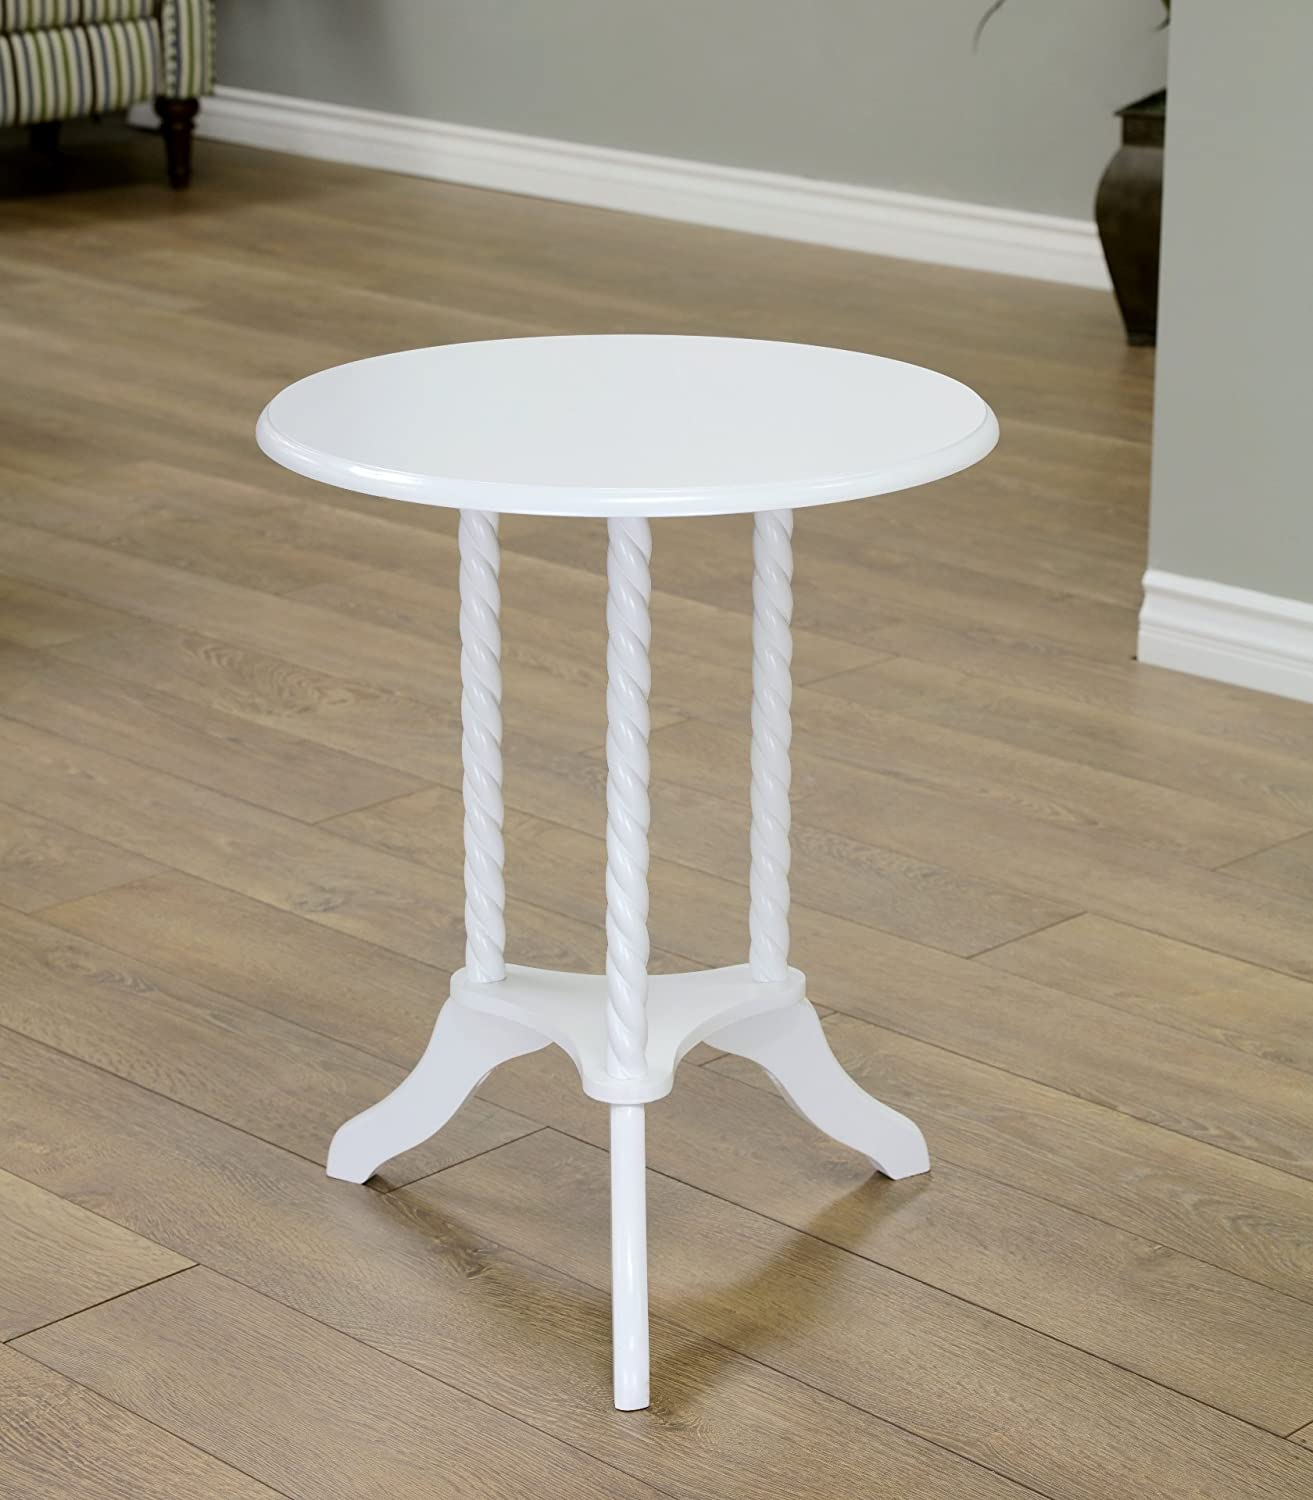 Amazon com frenchi home furnishing round end table white kitchen dining